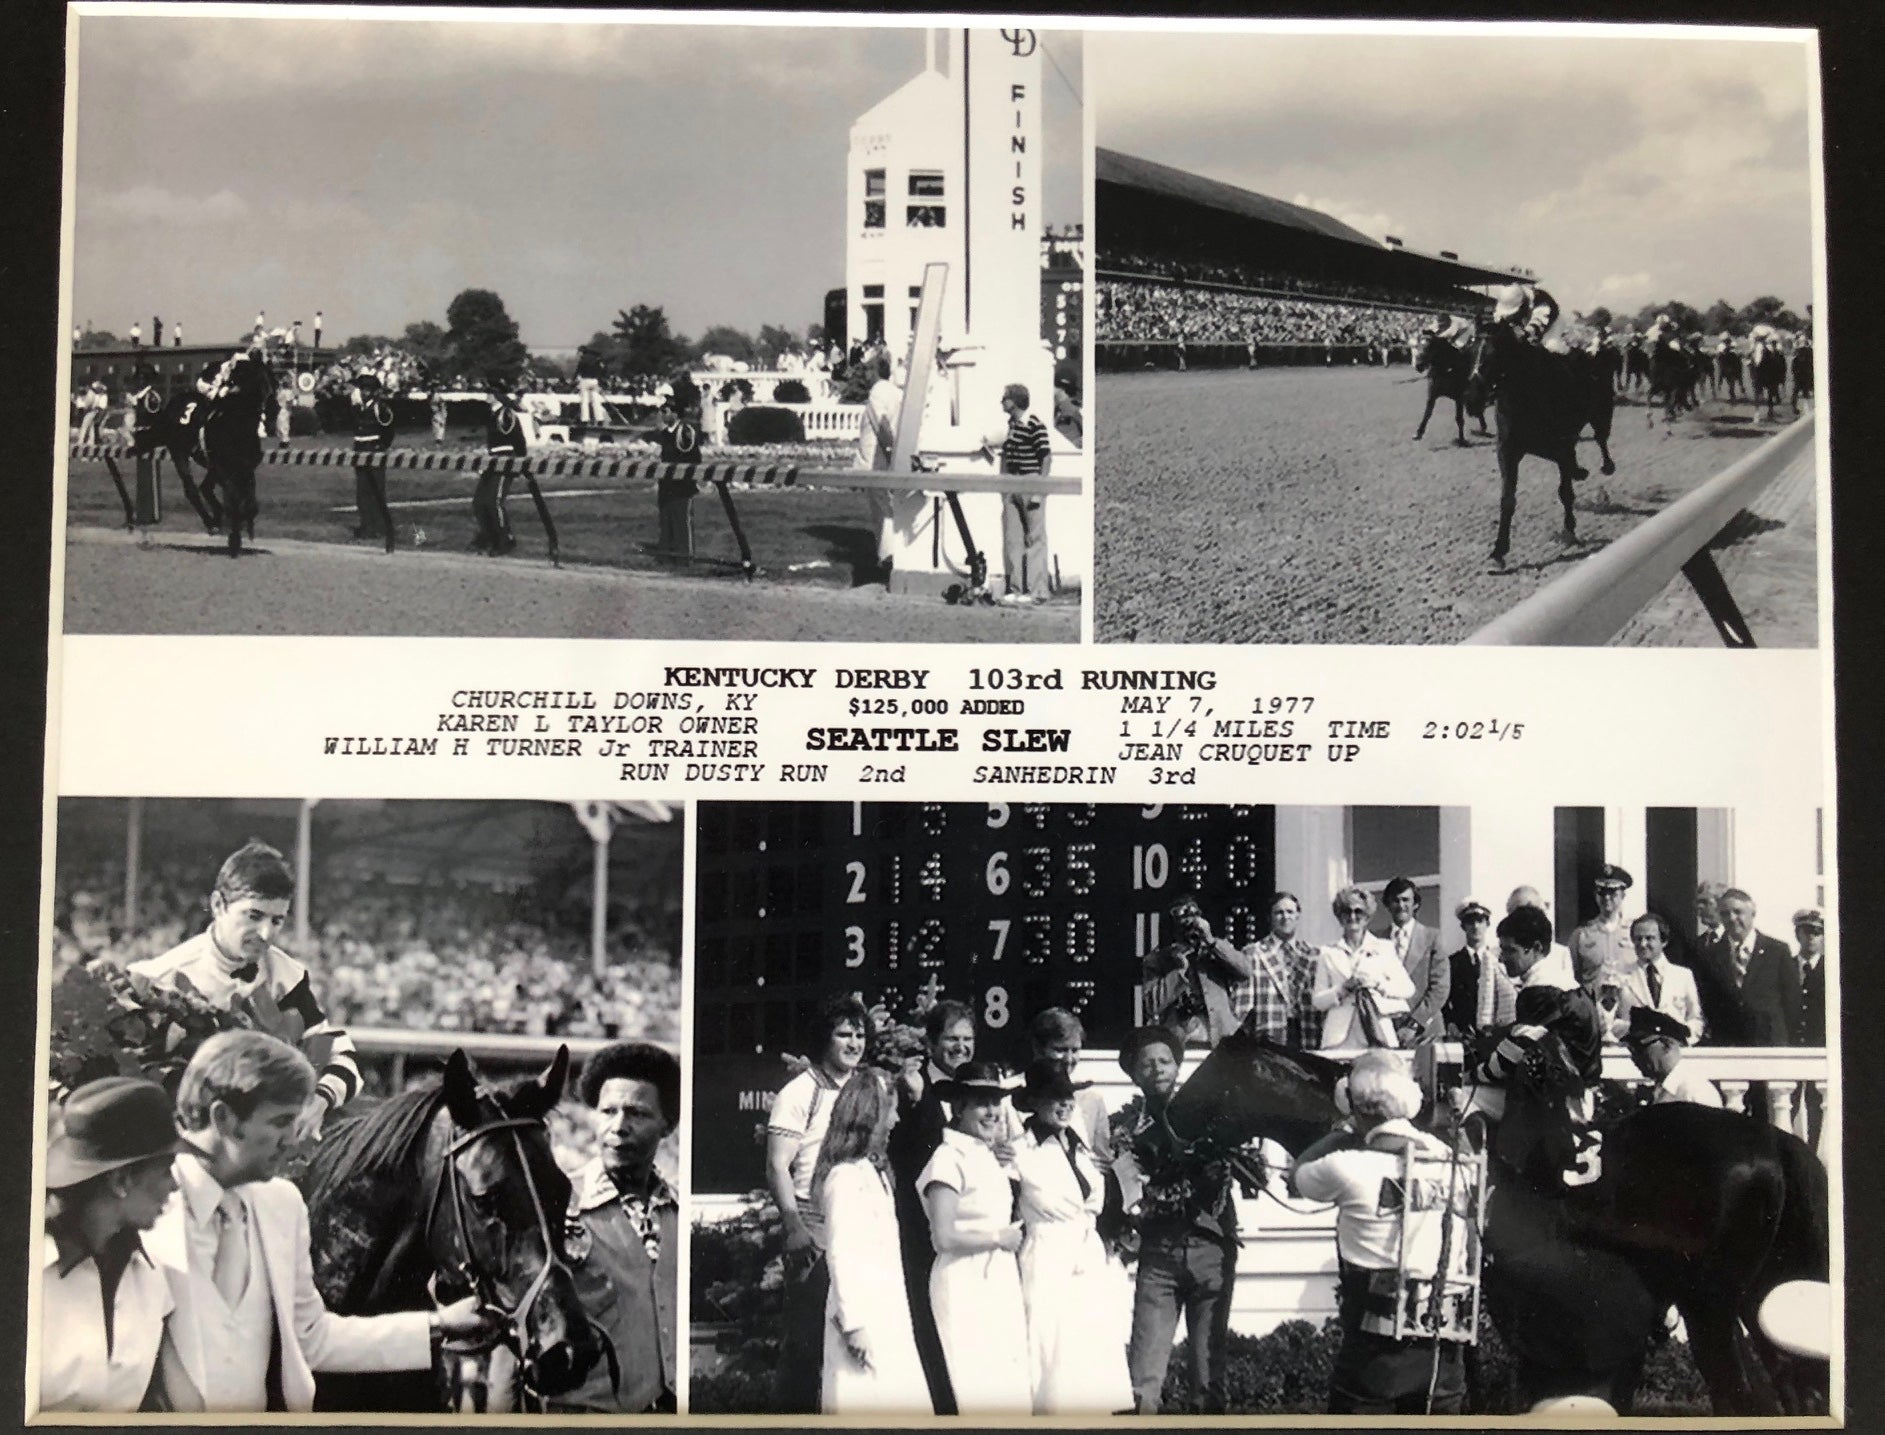 SEATTLE SLEW 1977 KENTUCKY DERBY ONE OF A KIND MEMORIBLILIA